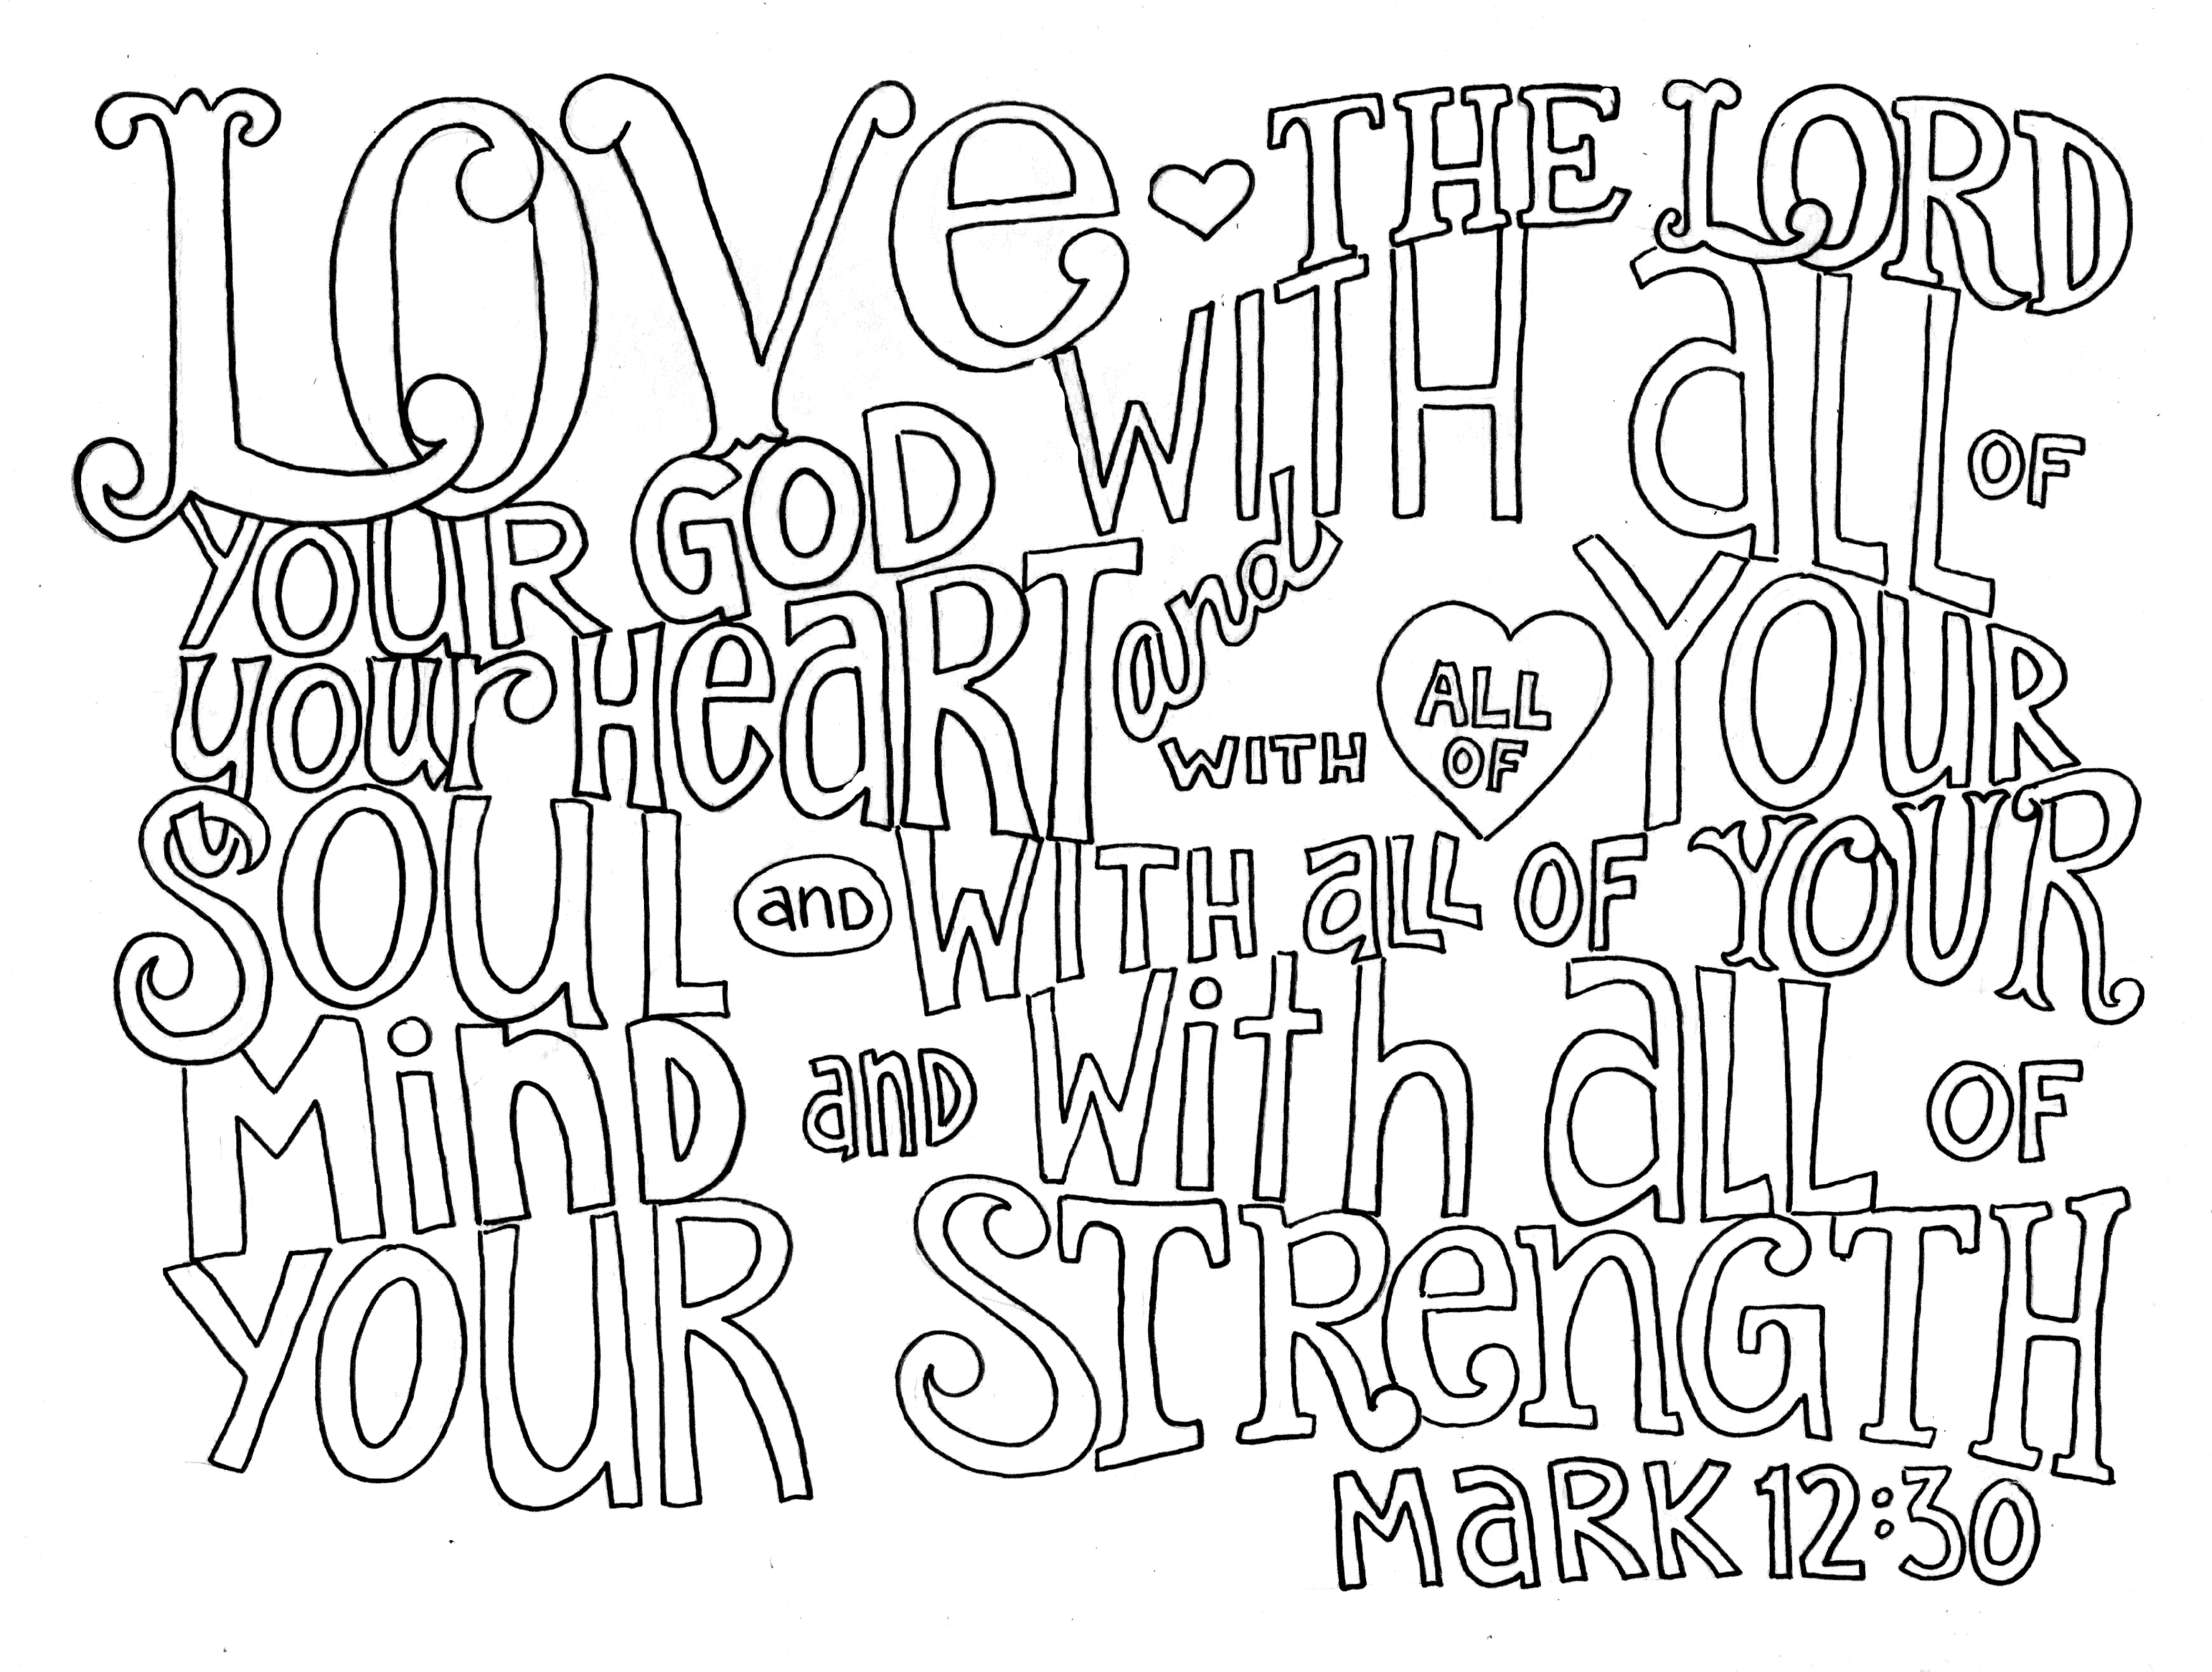 Coloring pages bible verses - Find This Pin And More On Bible Coloring Old Testament Bible Verse Coloring Pages